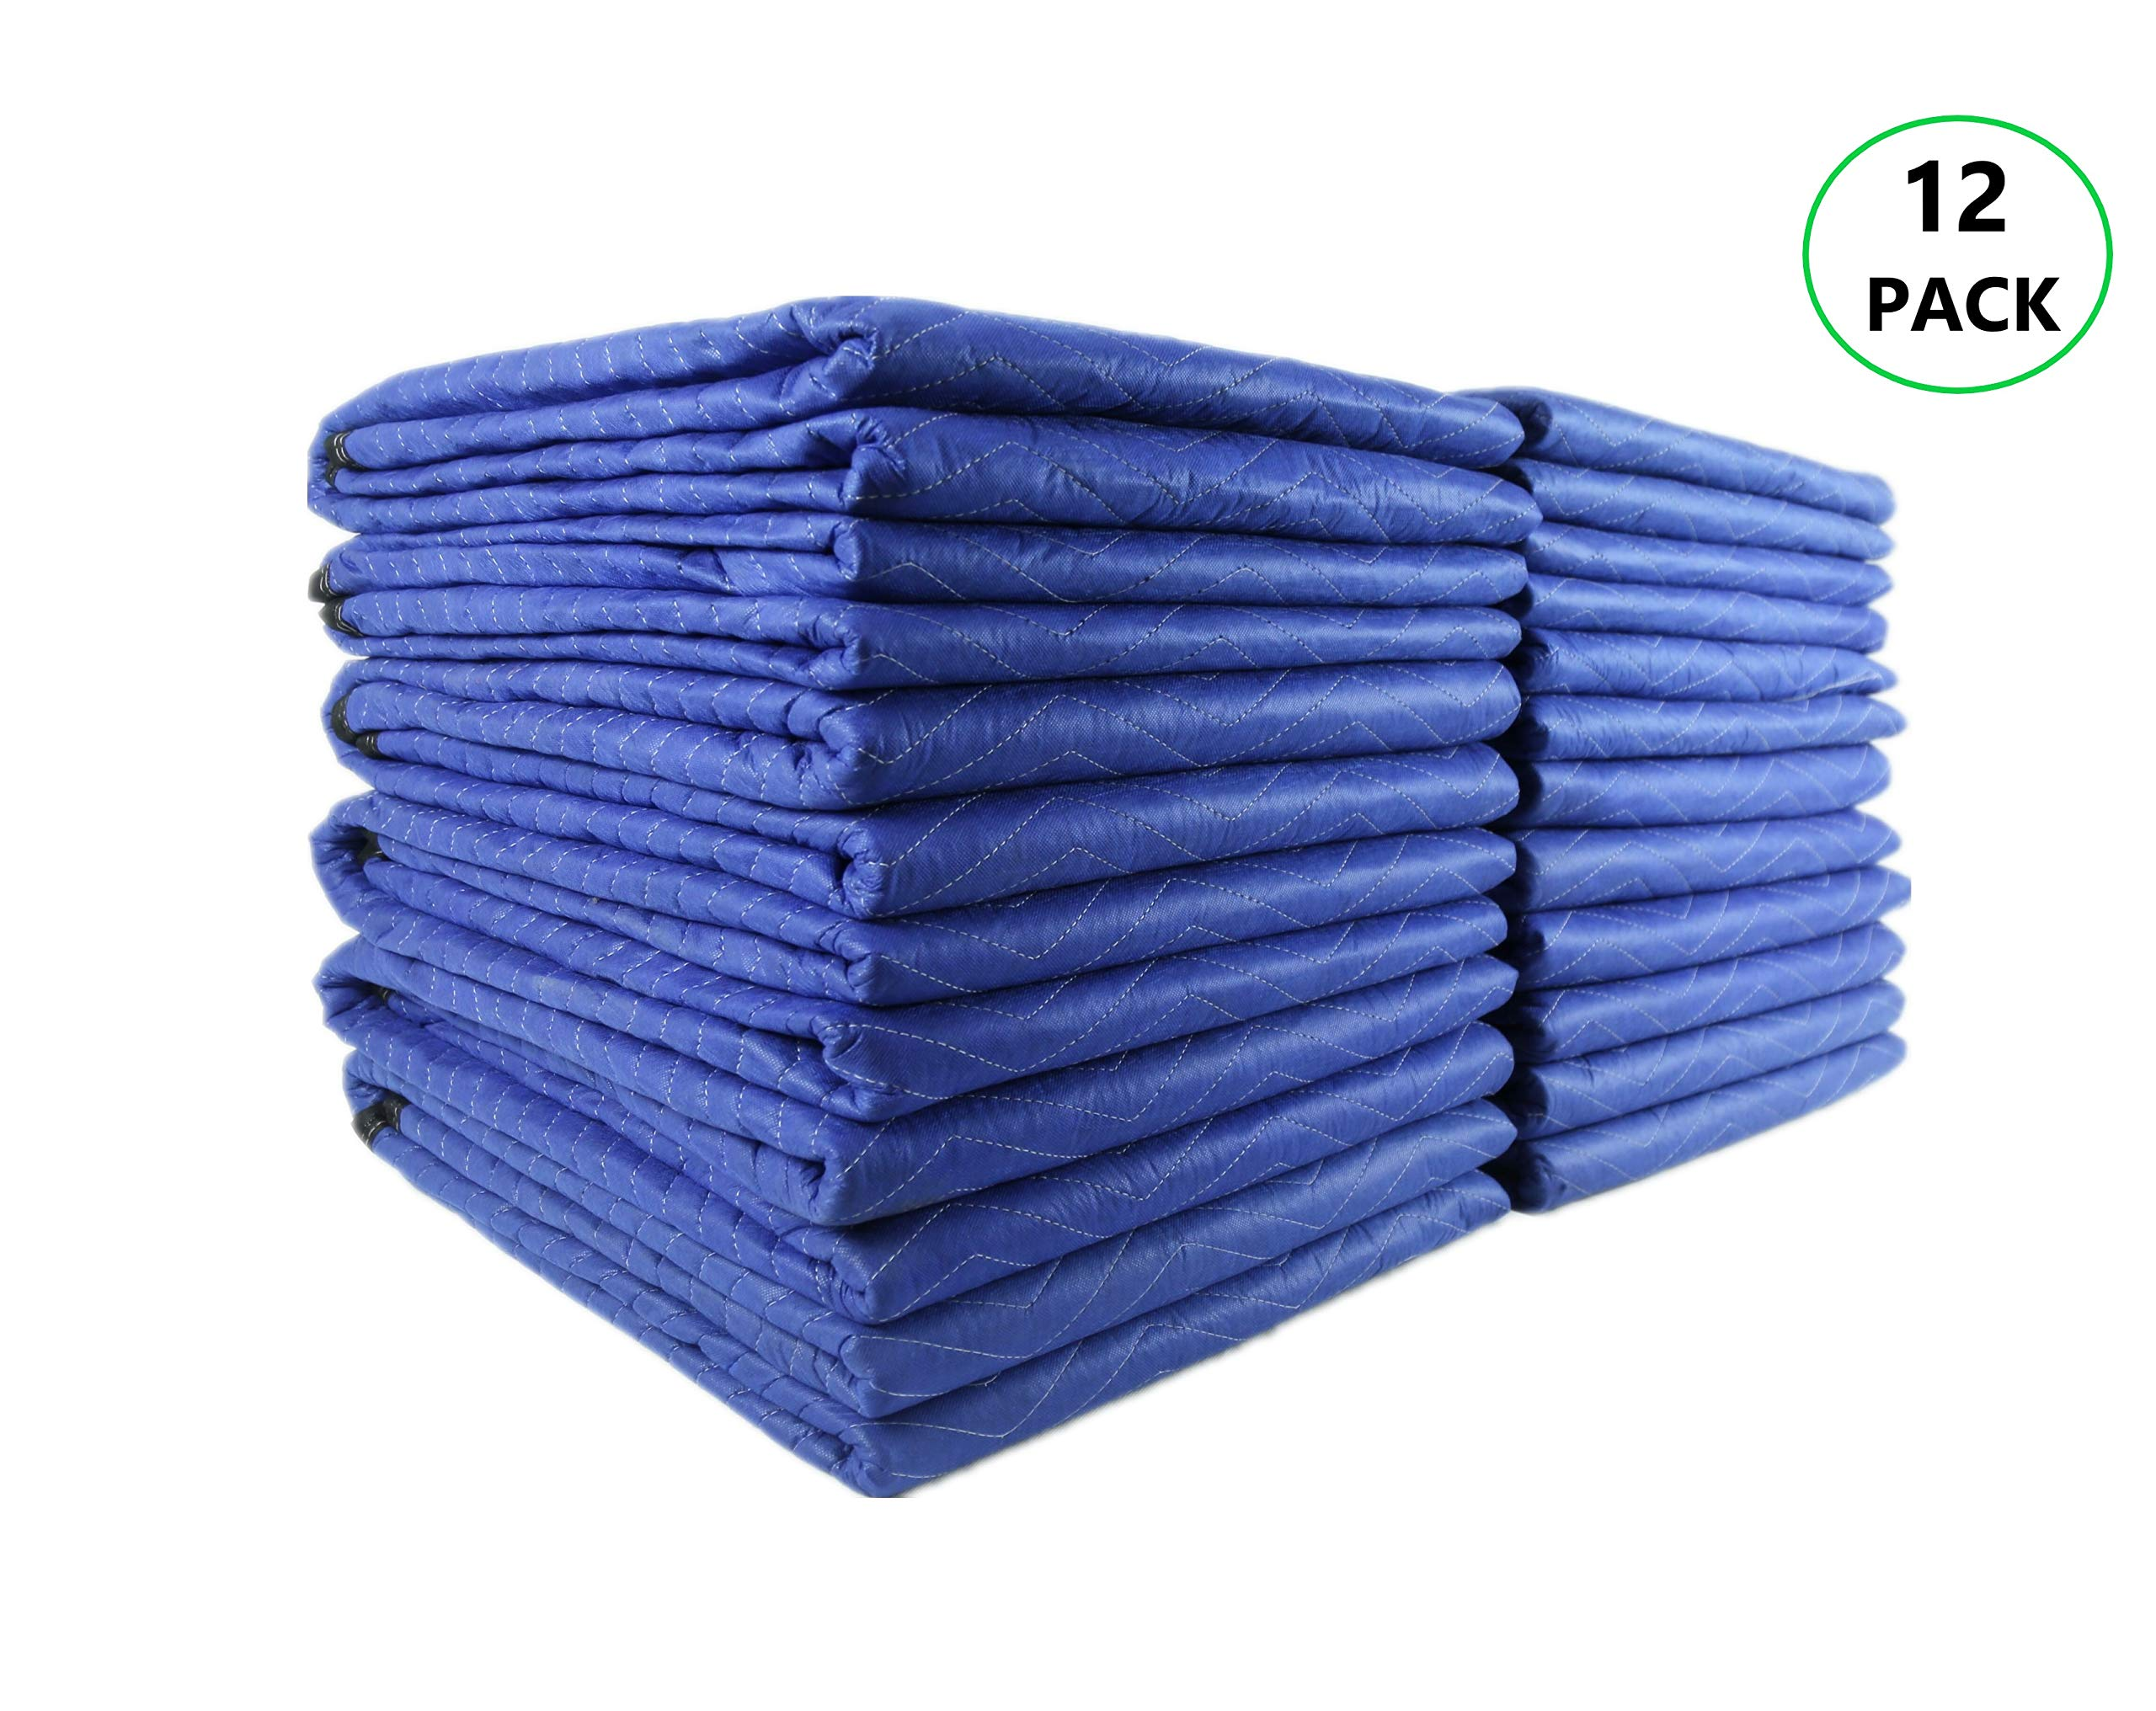 Shentao 12 Moving & Packing Blankets - 80'' x 72'' (40 lb/dz Weight) Thick Padding, Colorfast, Professional Quilted Furniture Blankets Blue/Black